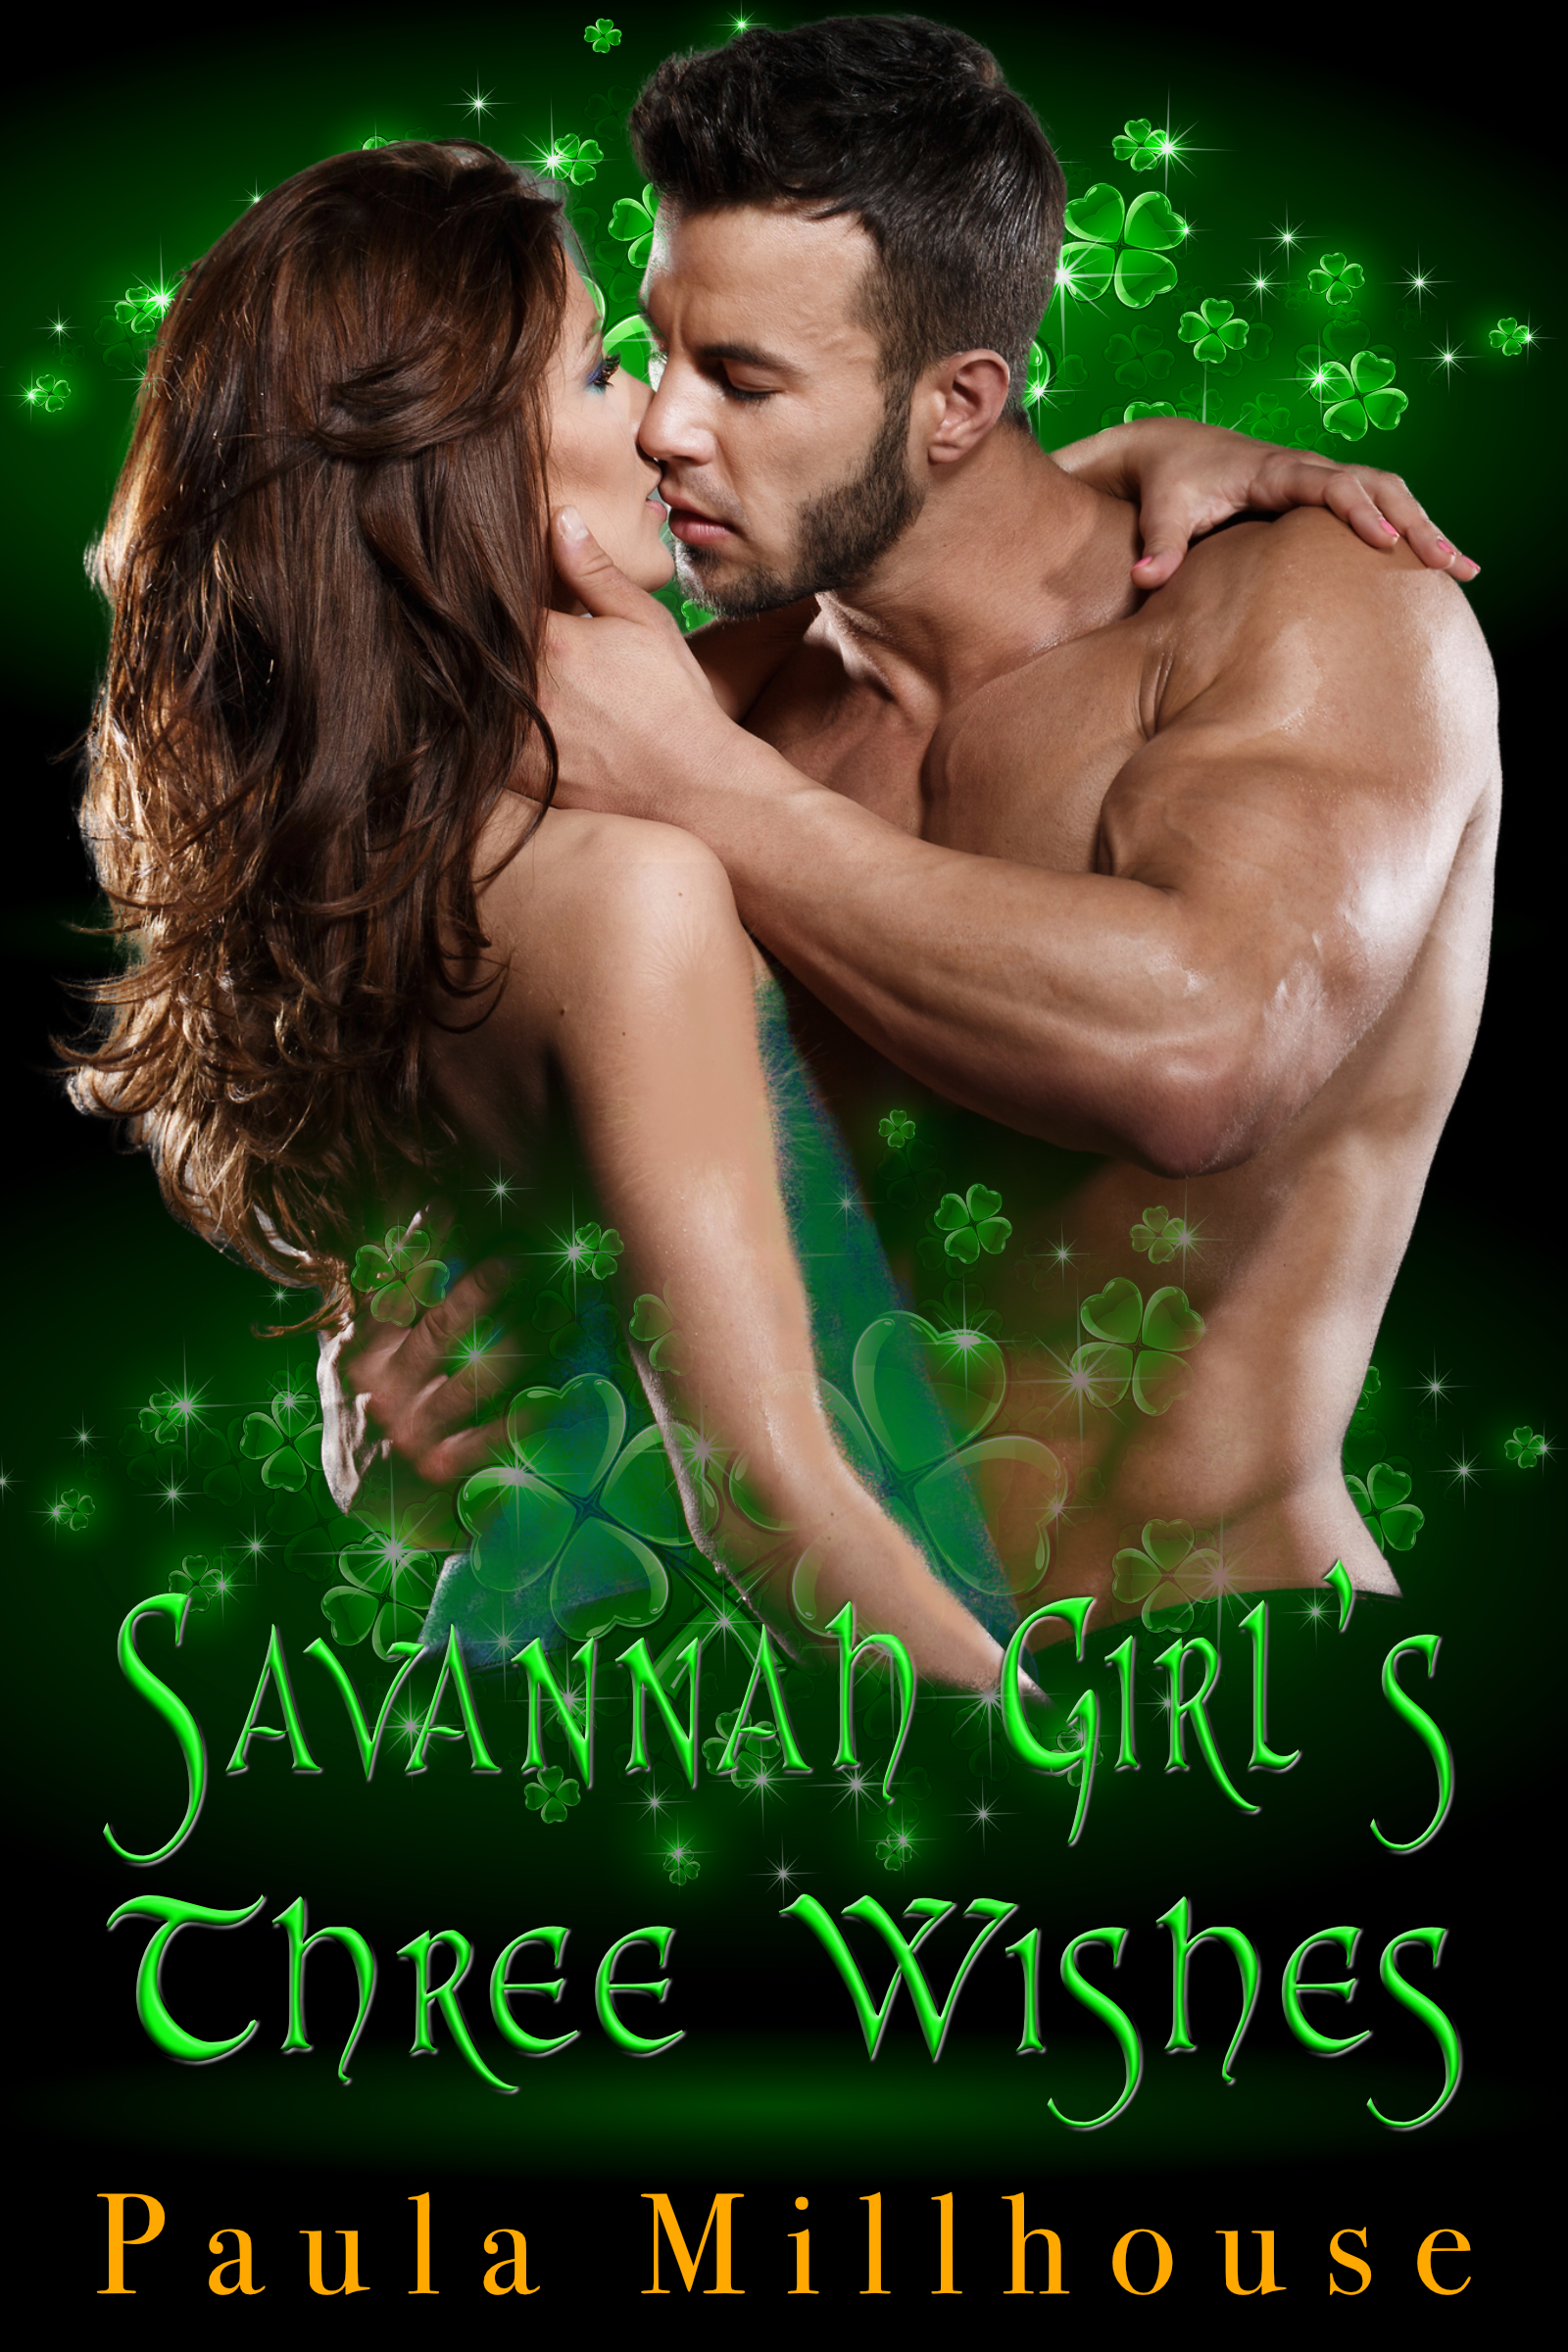 http://bit.ly/2SbI6xpSAVANNAHGIRL fantasy romance, Historic Savannah, St. Patrick's Day, Fairy Tale, Magical, Romance